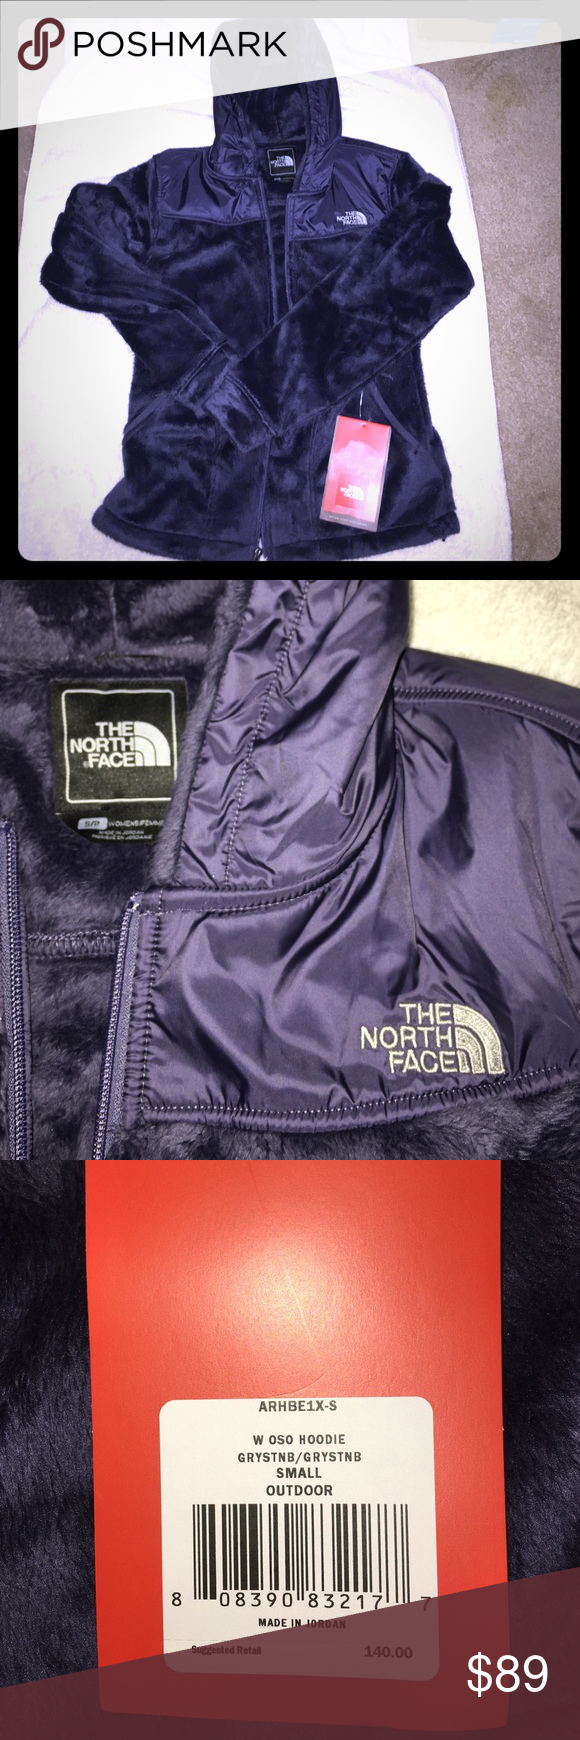 NWT North Face OSO Fleece Hoodie Brand new with tags, never worn.  Authentic North Face fleece.  Size women's Small.  Greystone blue color. North Face Jackets & Coats